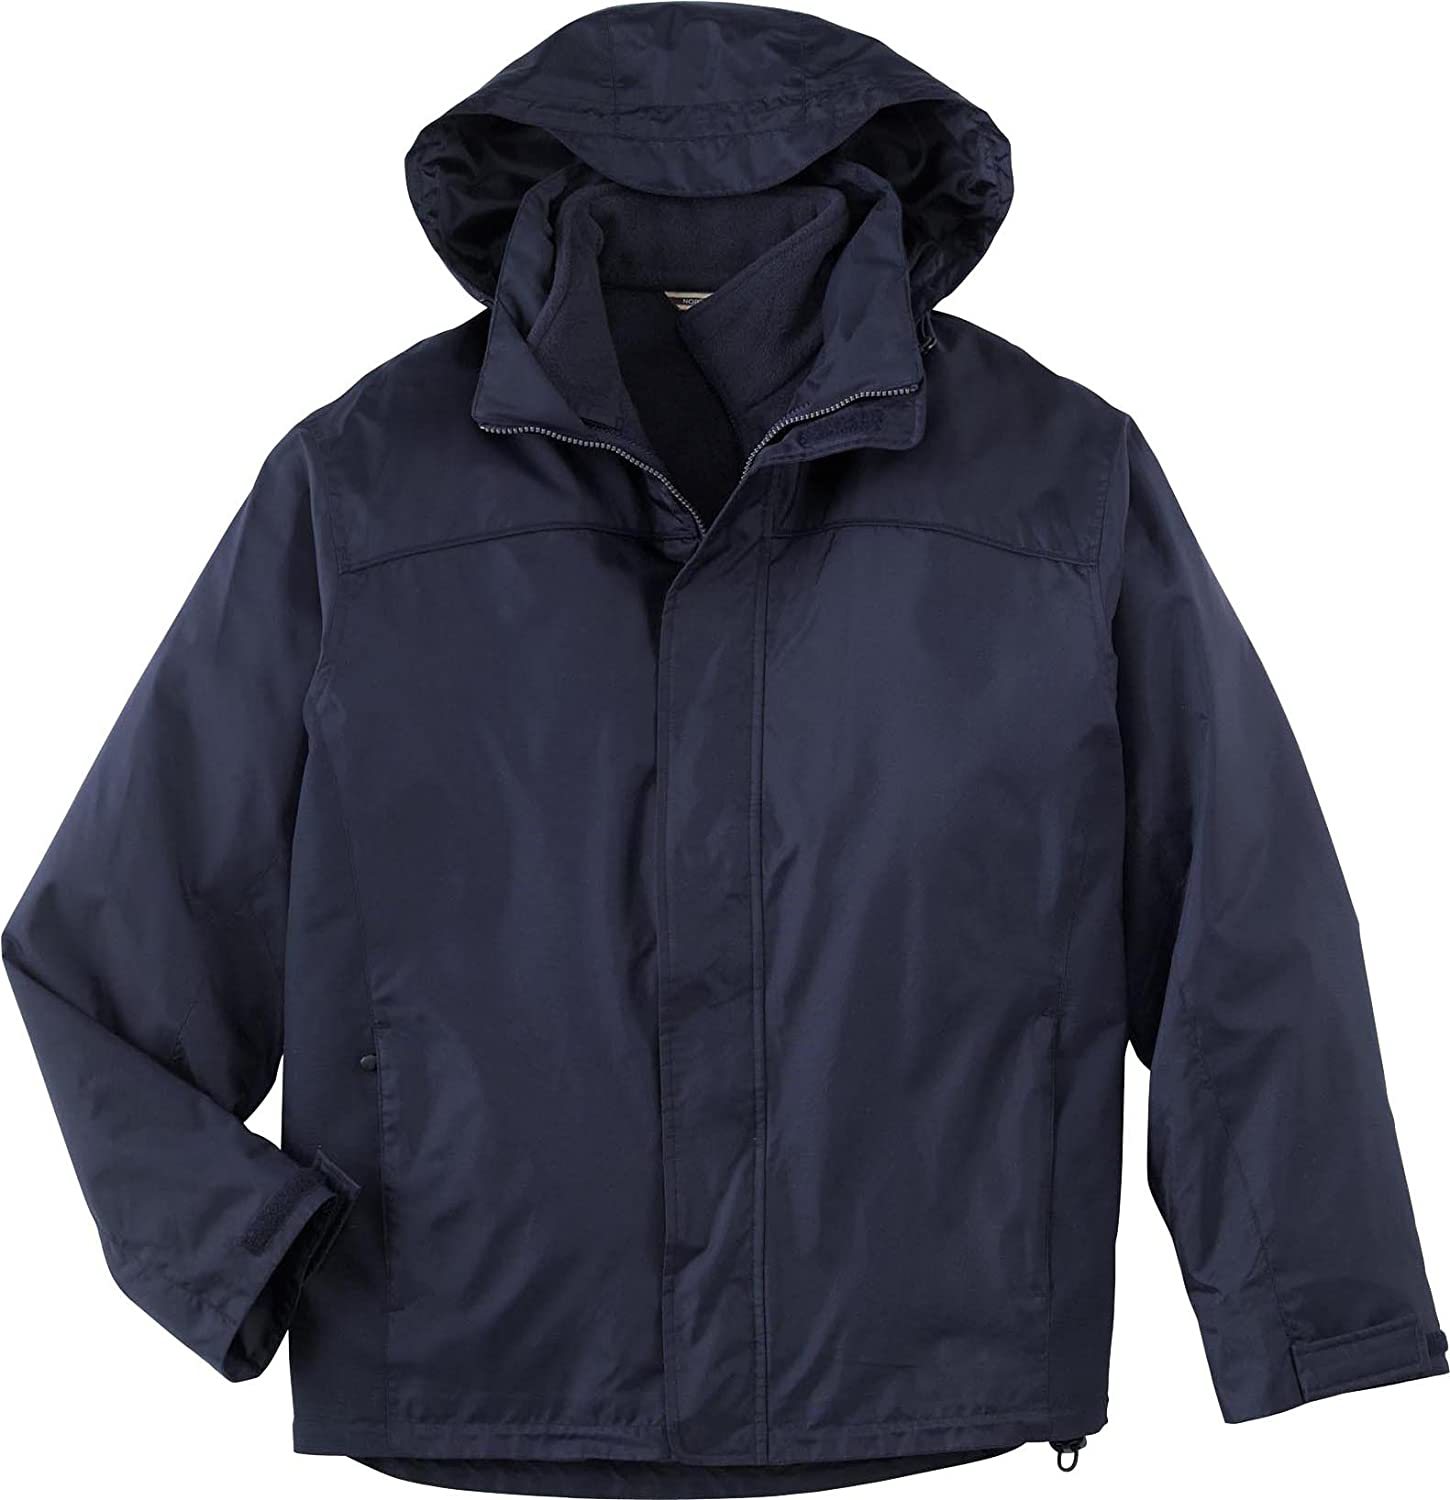 North End Mens 3-In-1 Jacket with Fleece Liner. 88130 - XXXX-Large - Midnight...